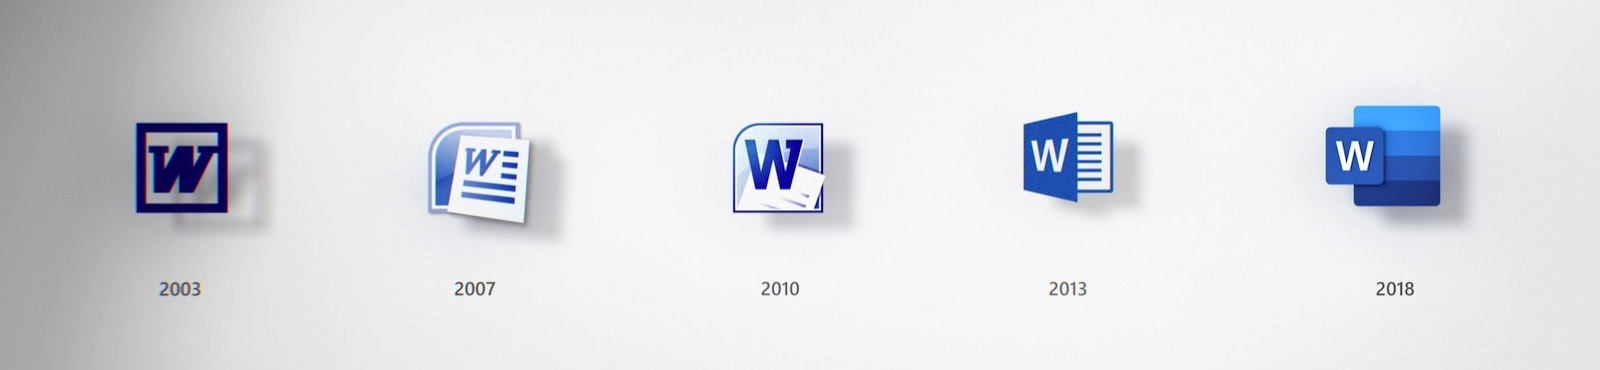 Microsoft-Word-New-Icons.jpg